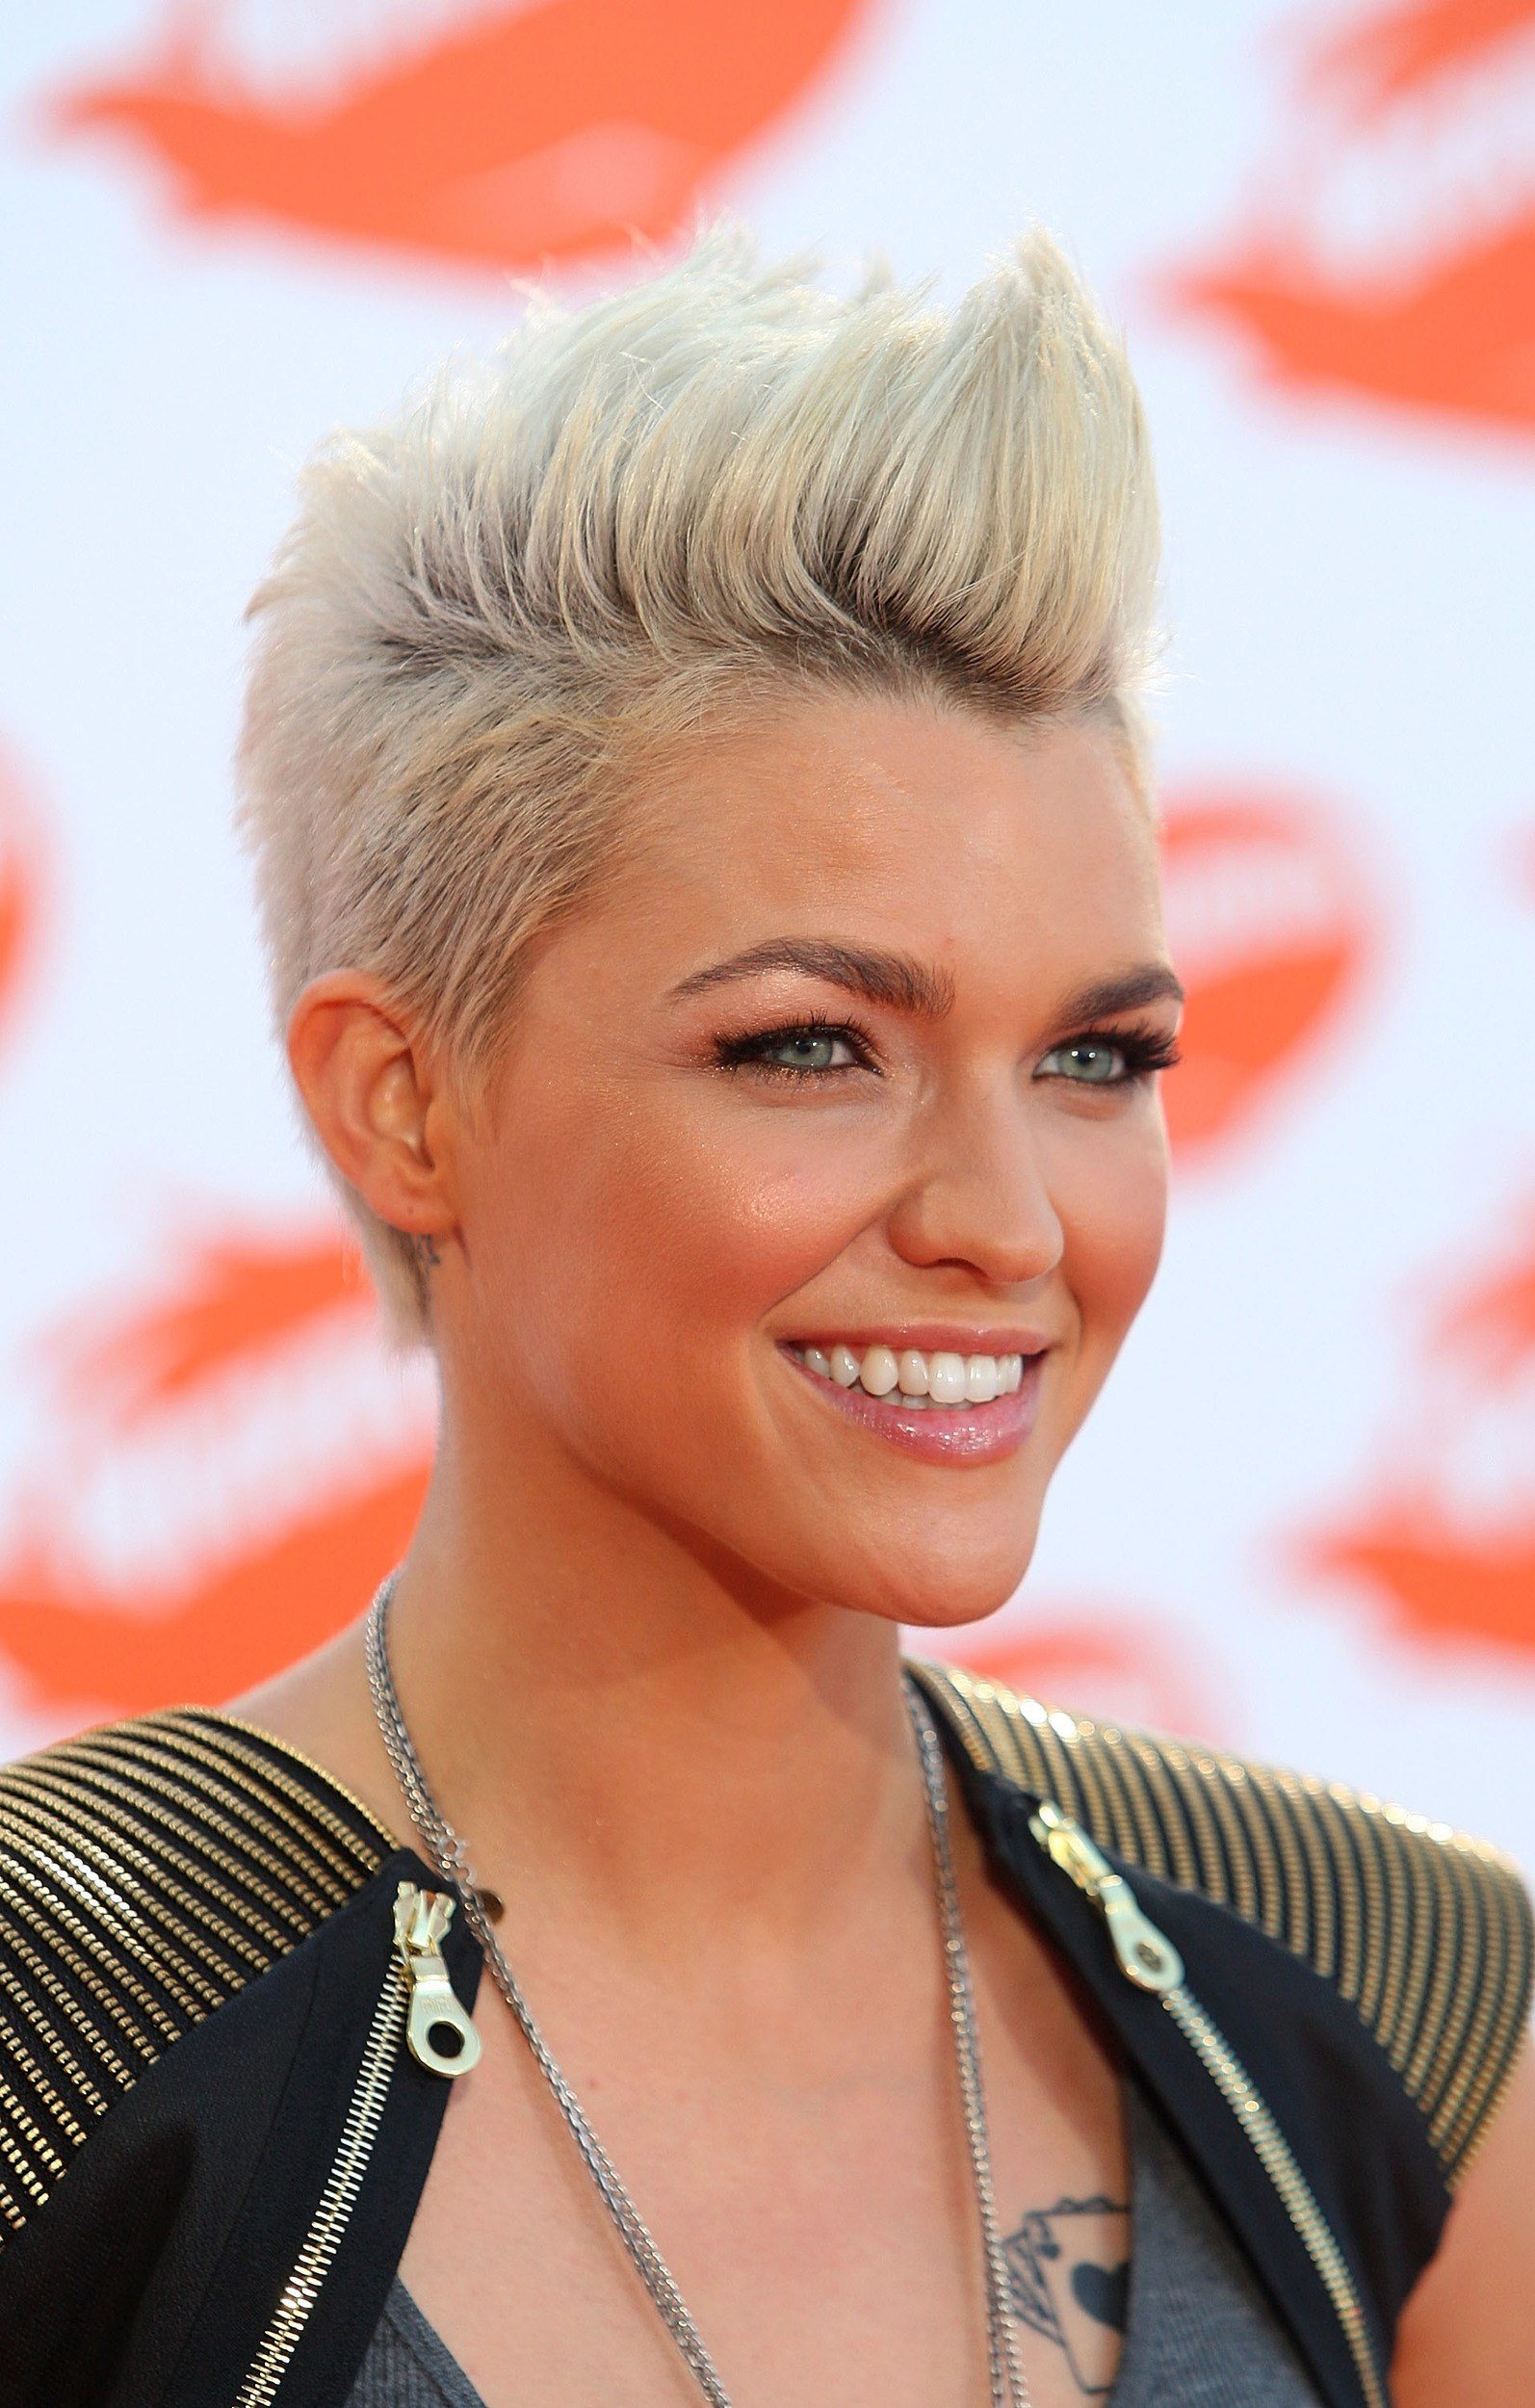 New 15 Gorgeous Mohawk Hairstyles For Women This Year Ideas With Pictures